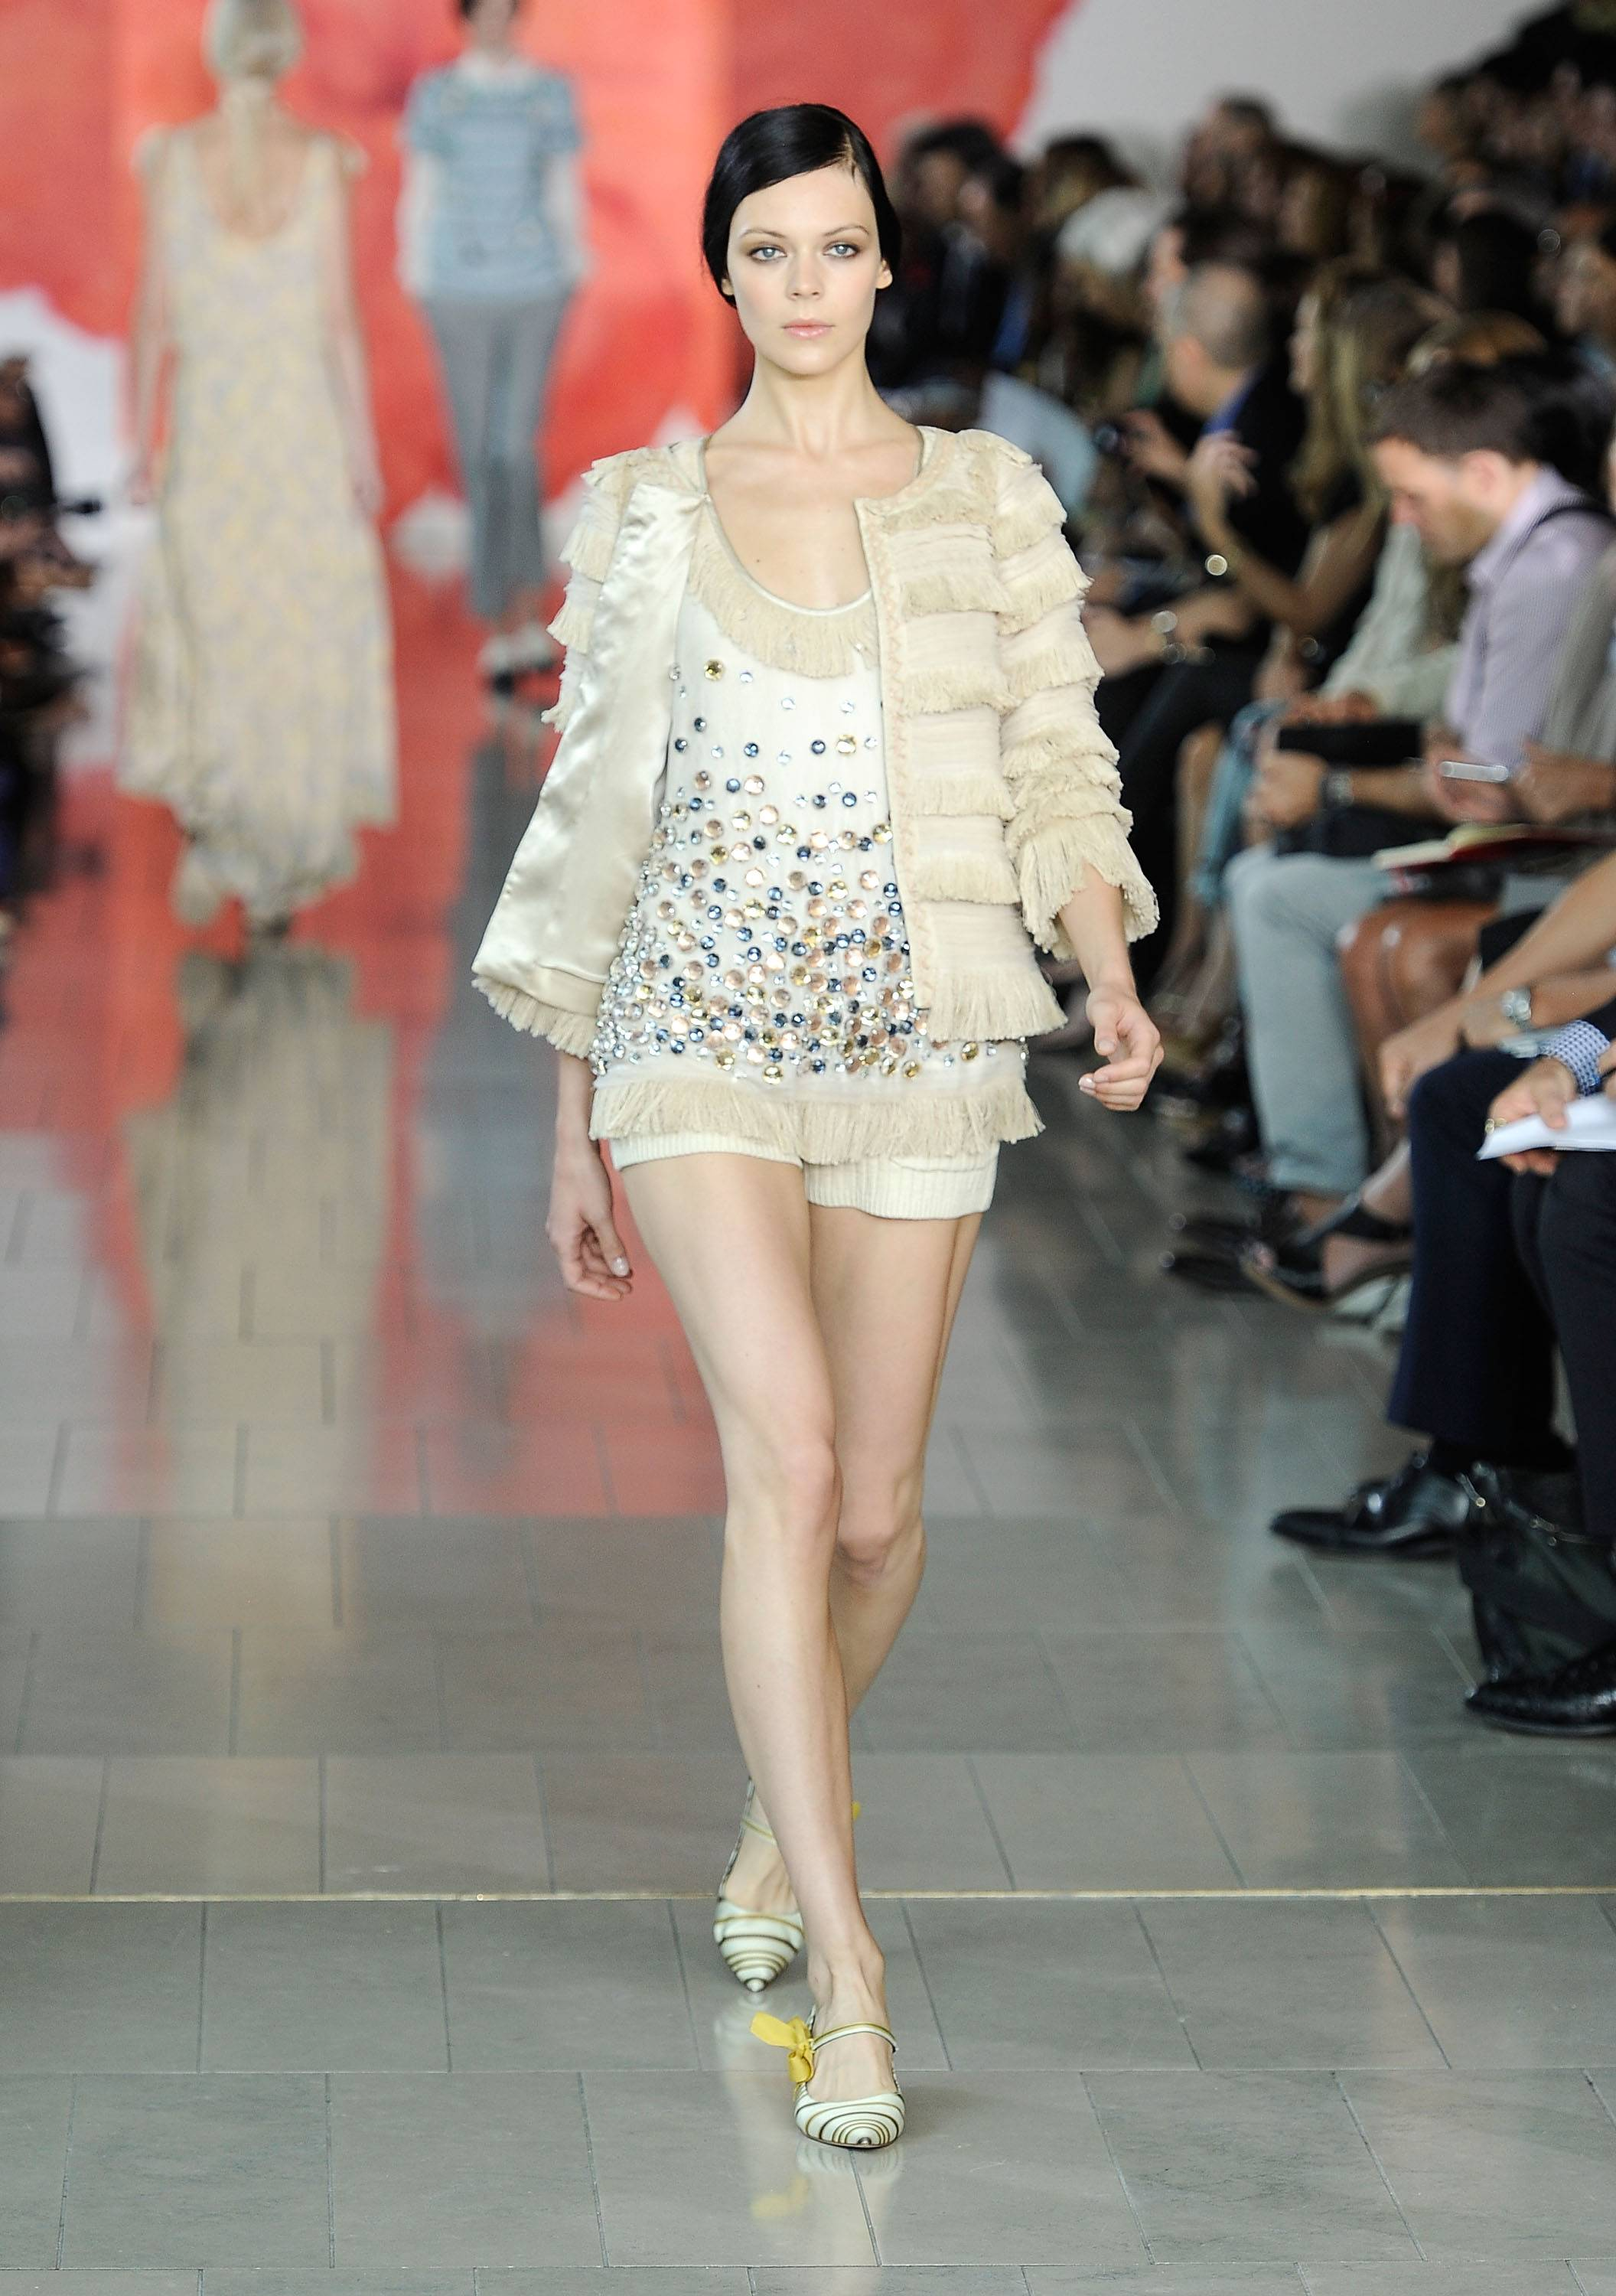 Tory Burch Runway Presentation 5, Mercedes Benz Fashion Week, s/s 2012